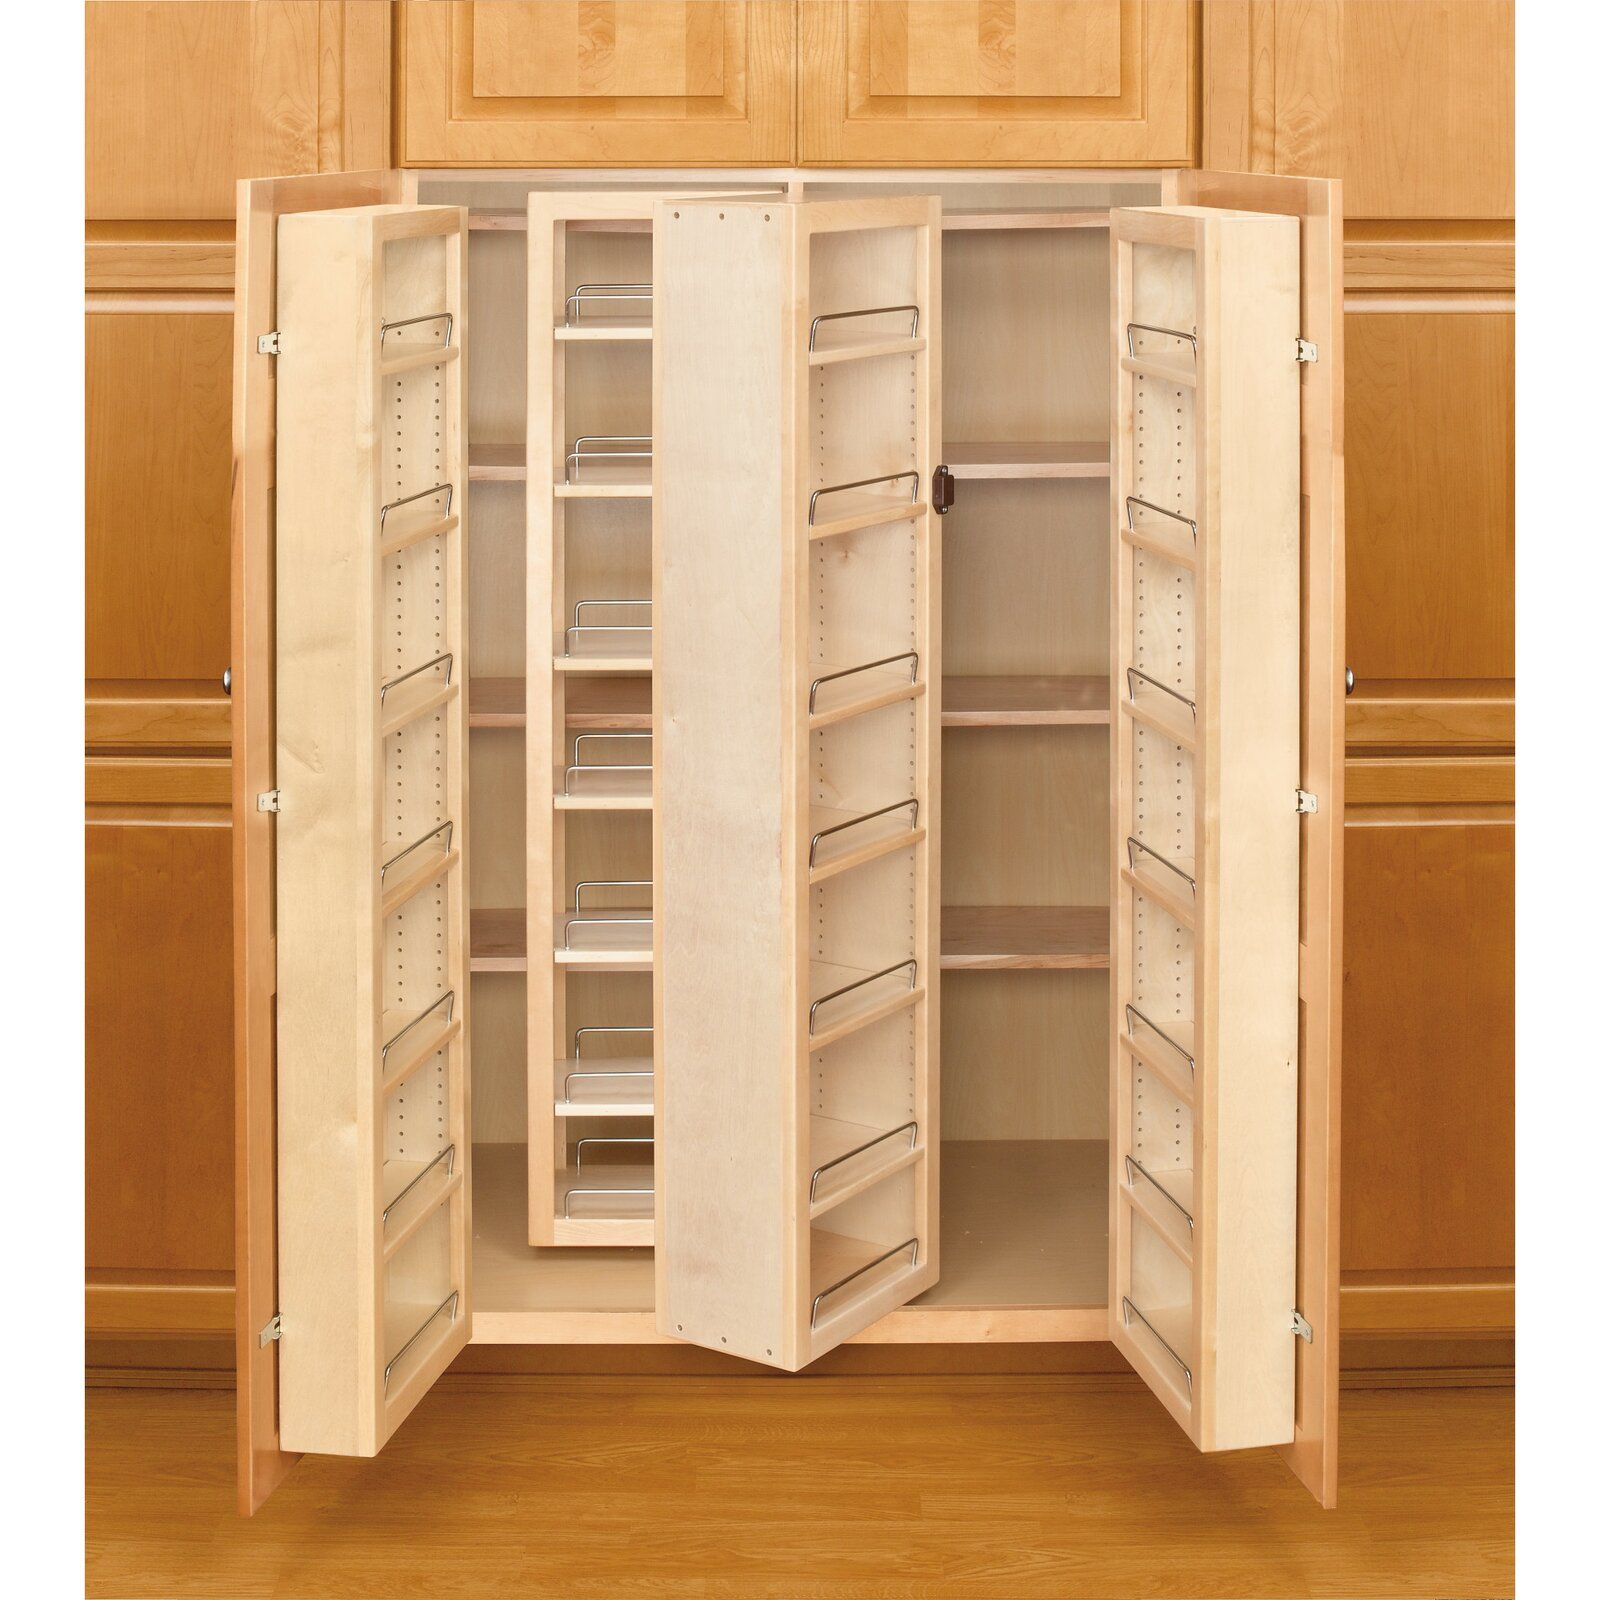 Rev A Shelf Pull Out Pantry Wayfair New Kitchen Cabinets Kitchen Pantry Design Kitchen Pantry Cabinets